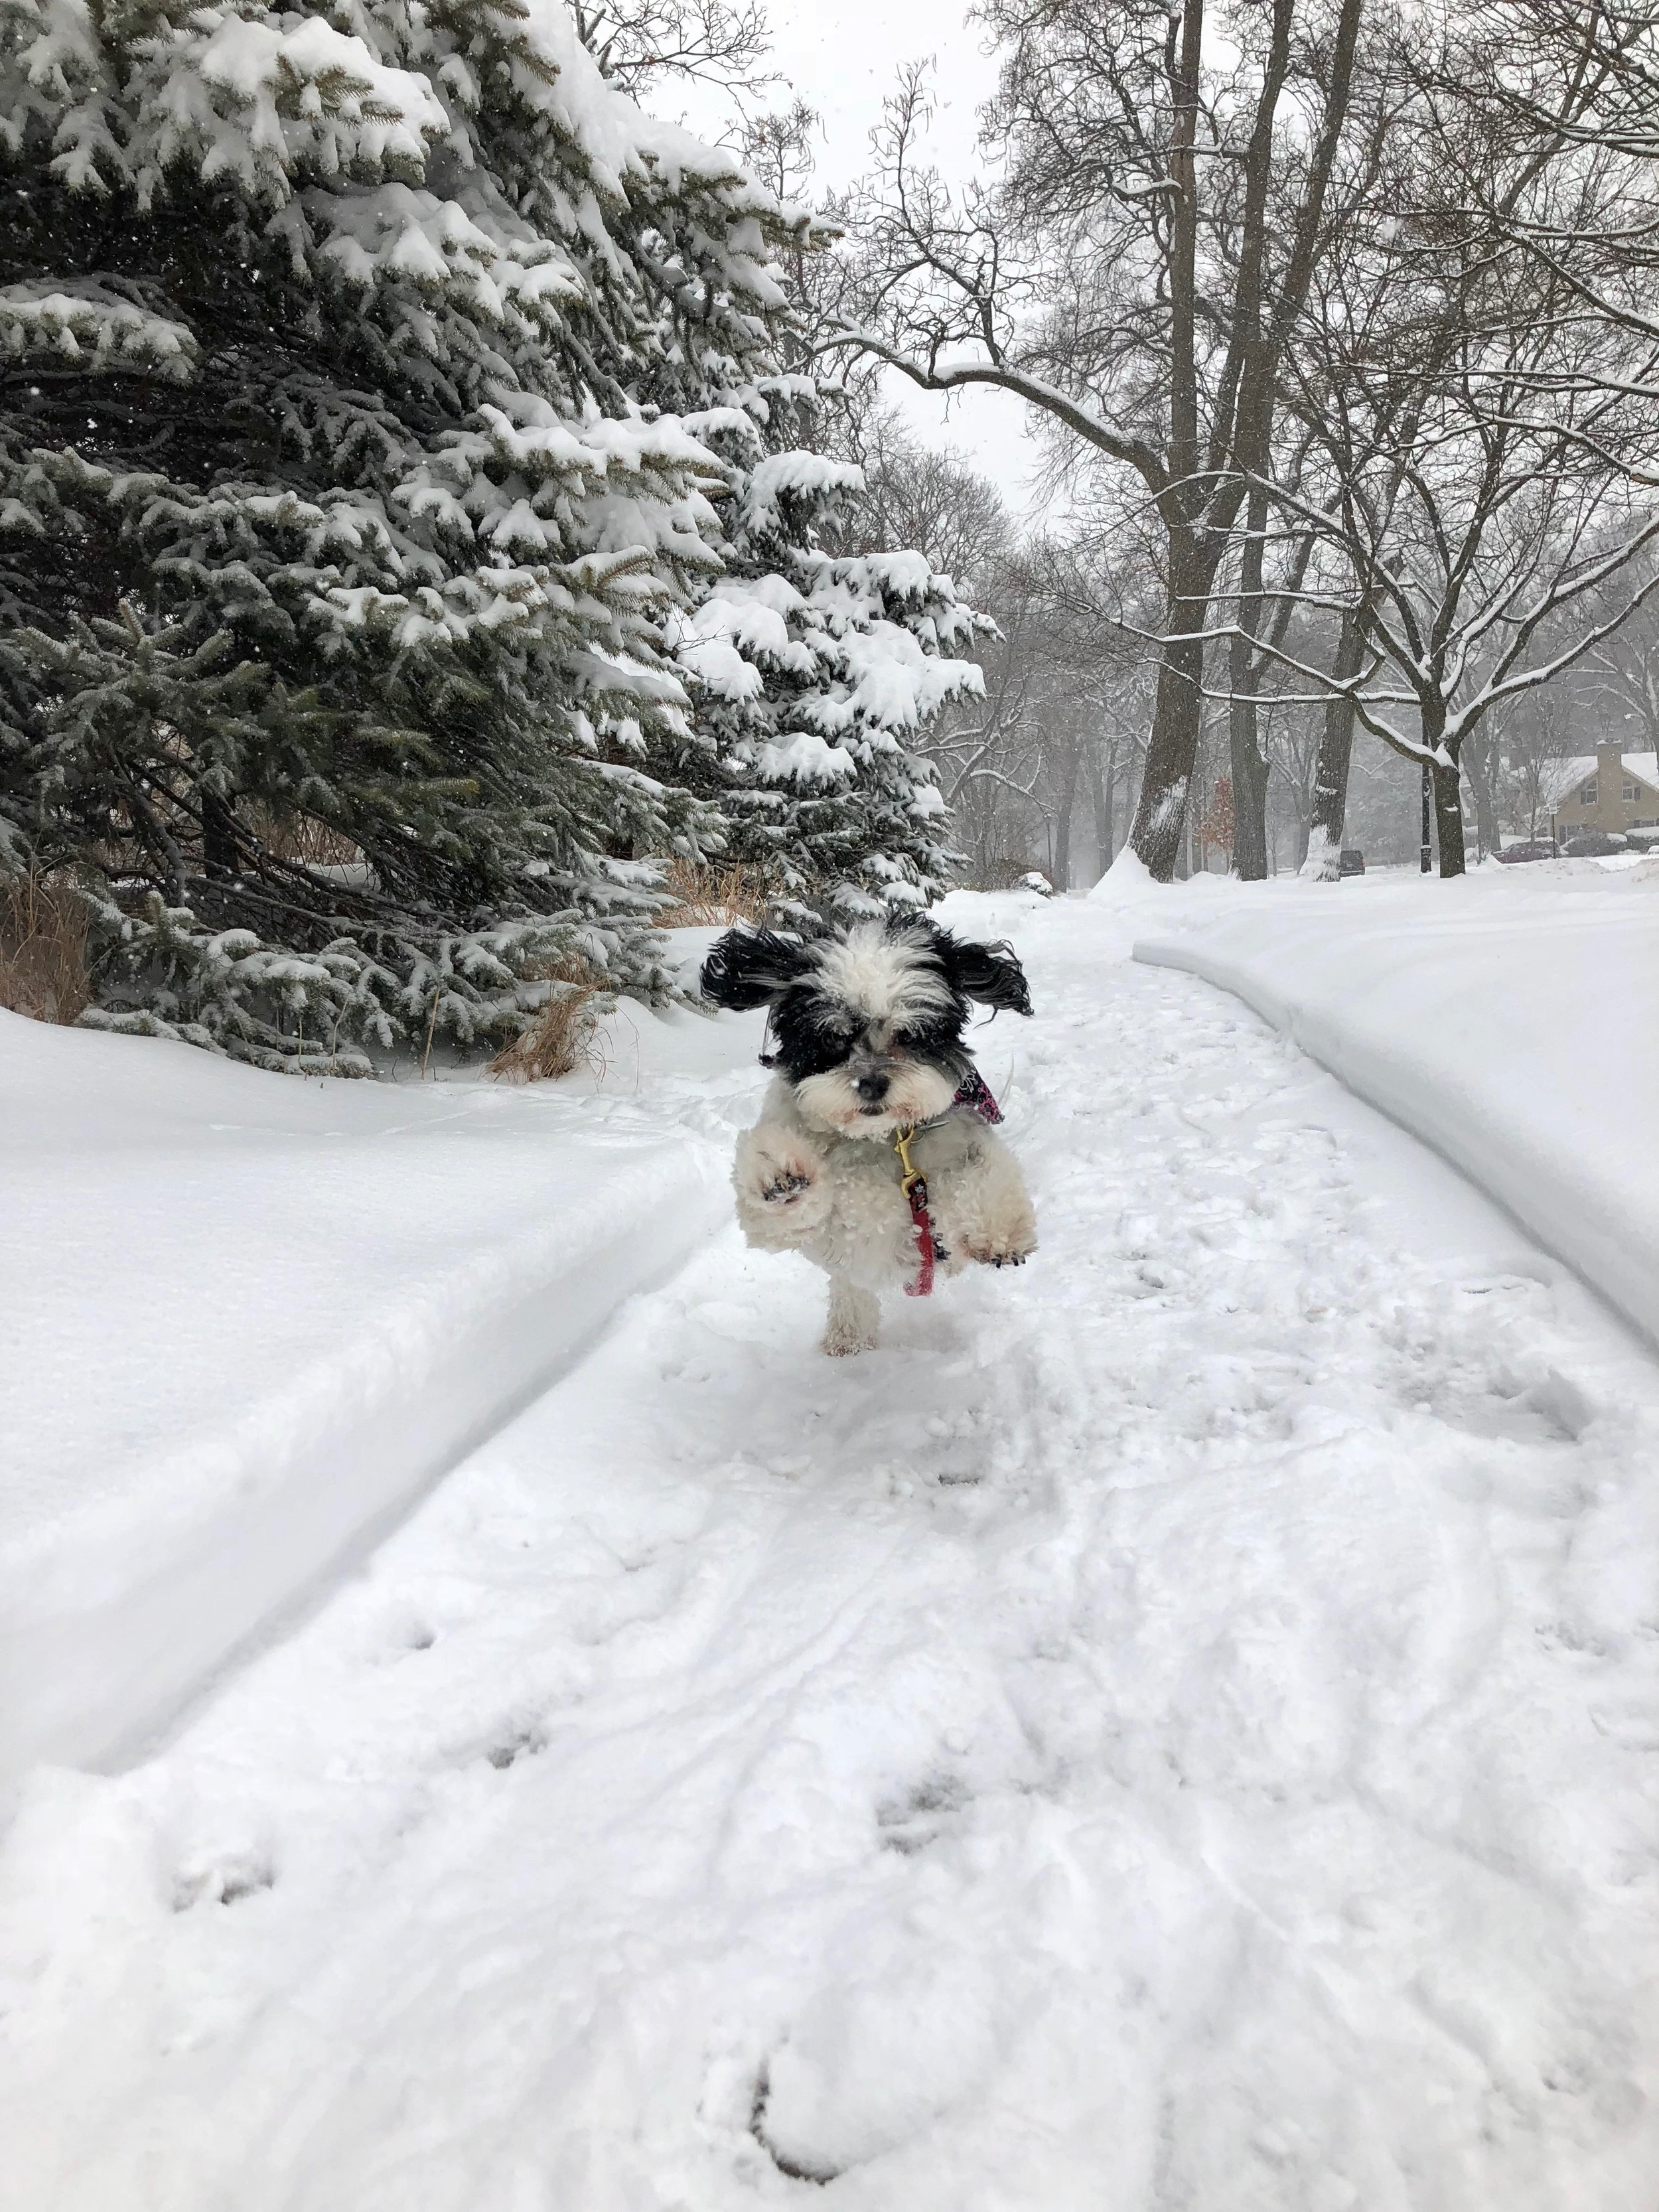 My mom's pup frolicking in the snow. Is this not the most joyful picture you've ever seen??! Photo courtesy of Marju Eisenberg.